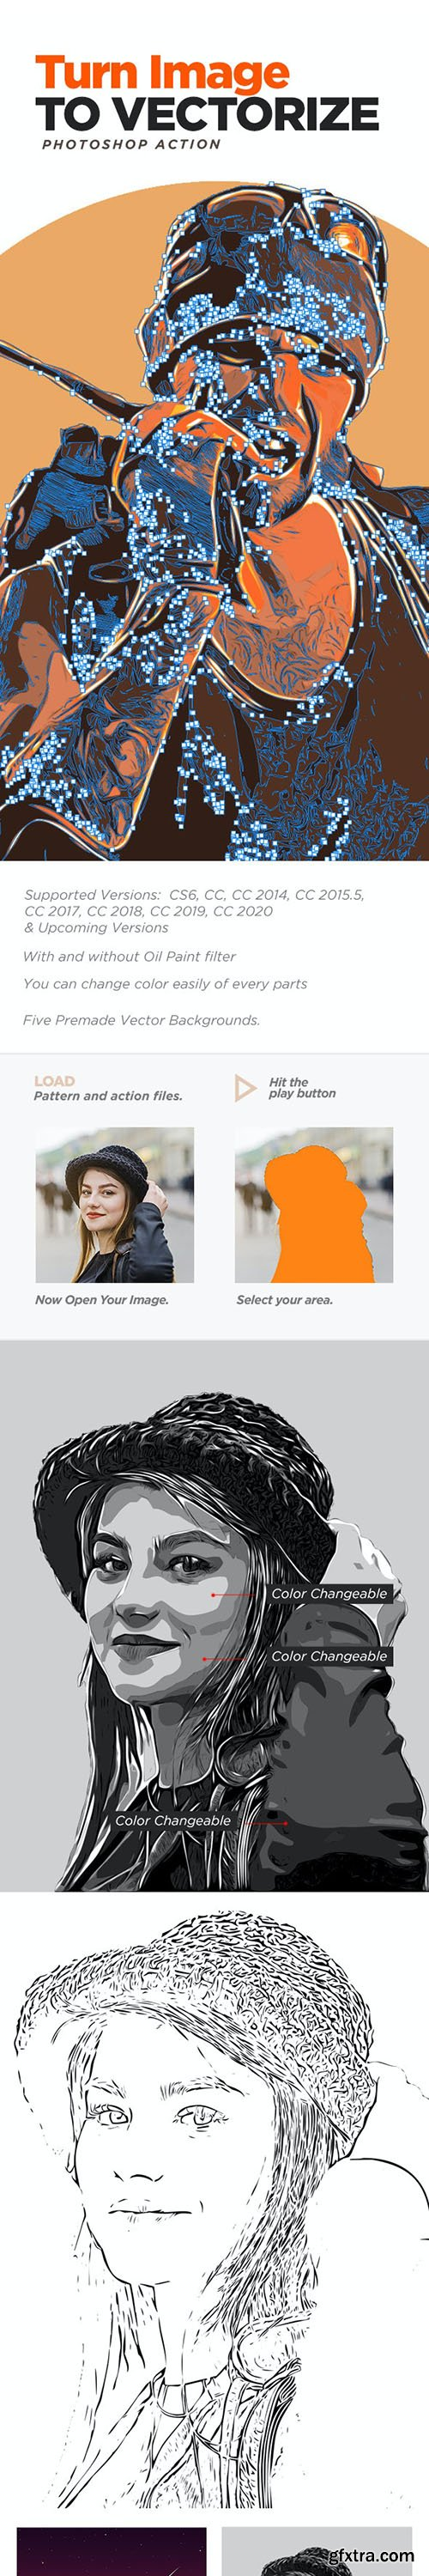 GraphicRiver - Turn Image to Vectorize With Photoshop Action 27082300